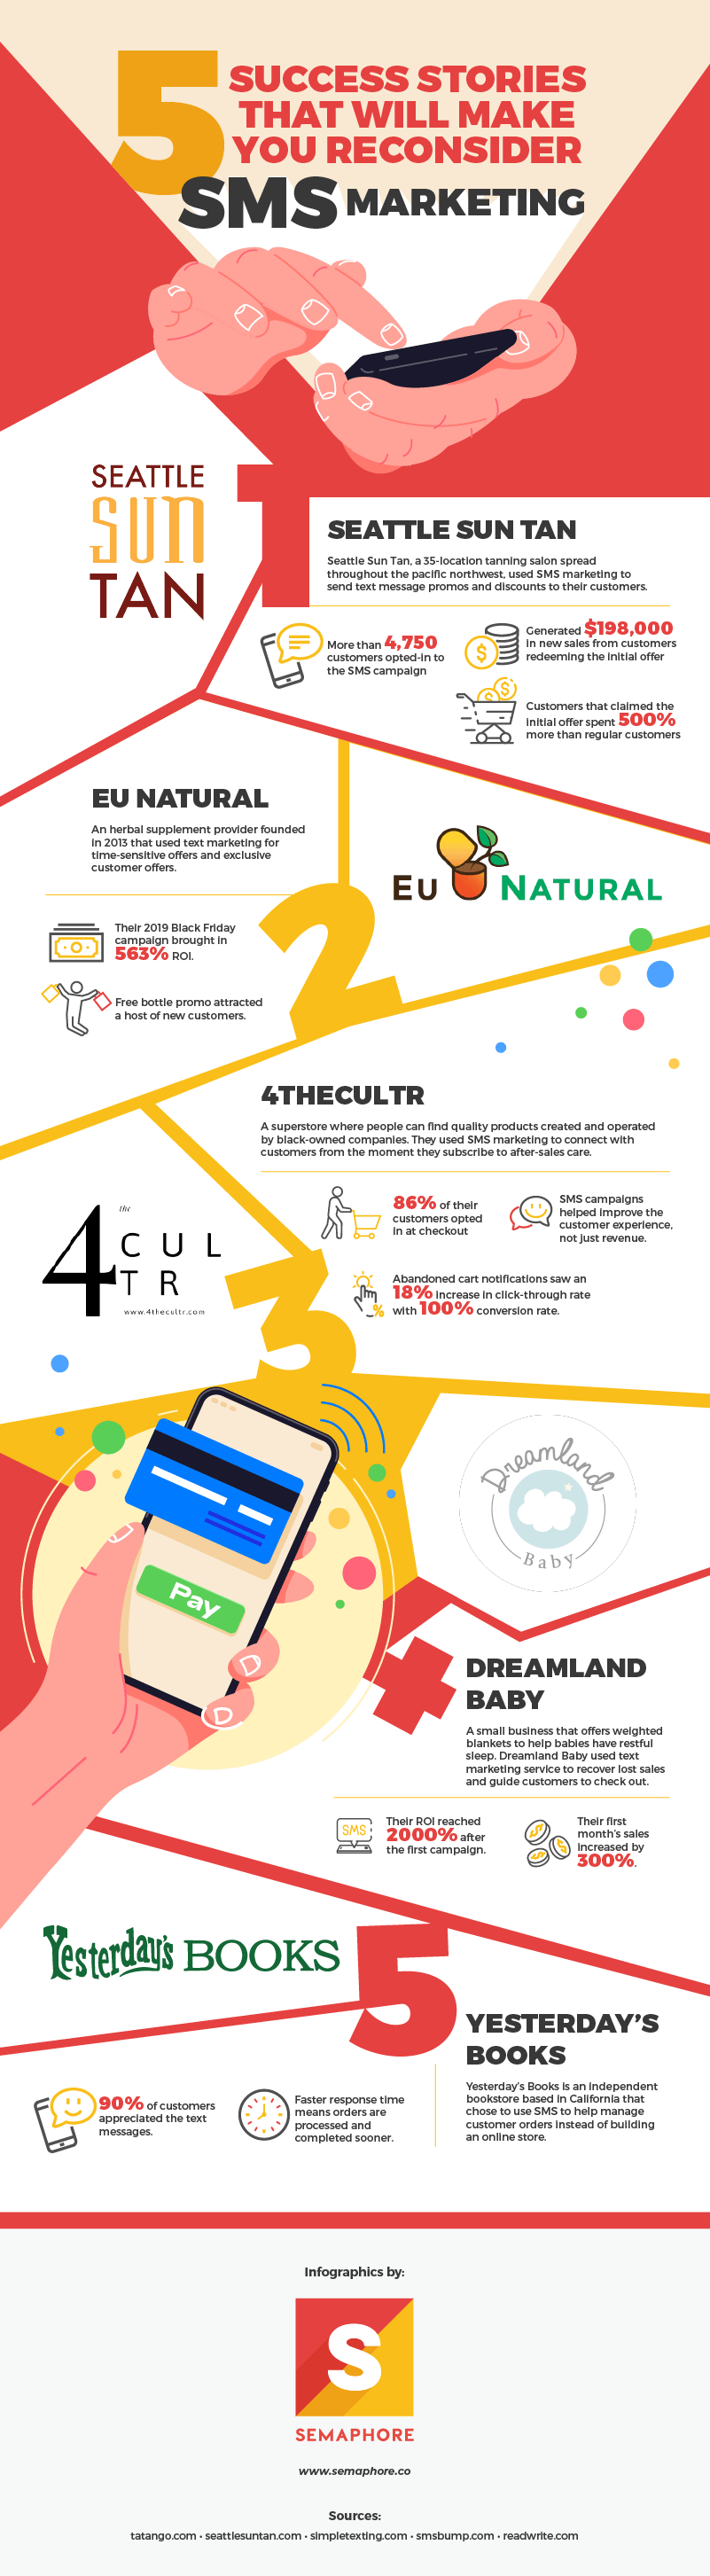 5 Success Stories That Will Make You Reconsider SMS Marketing - Infographic